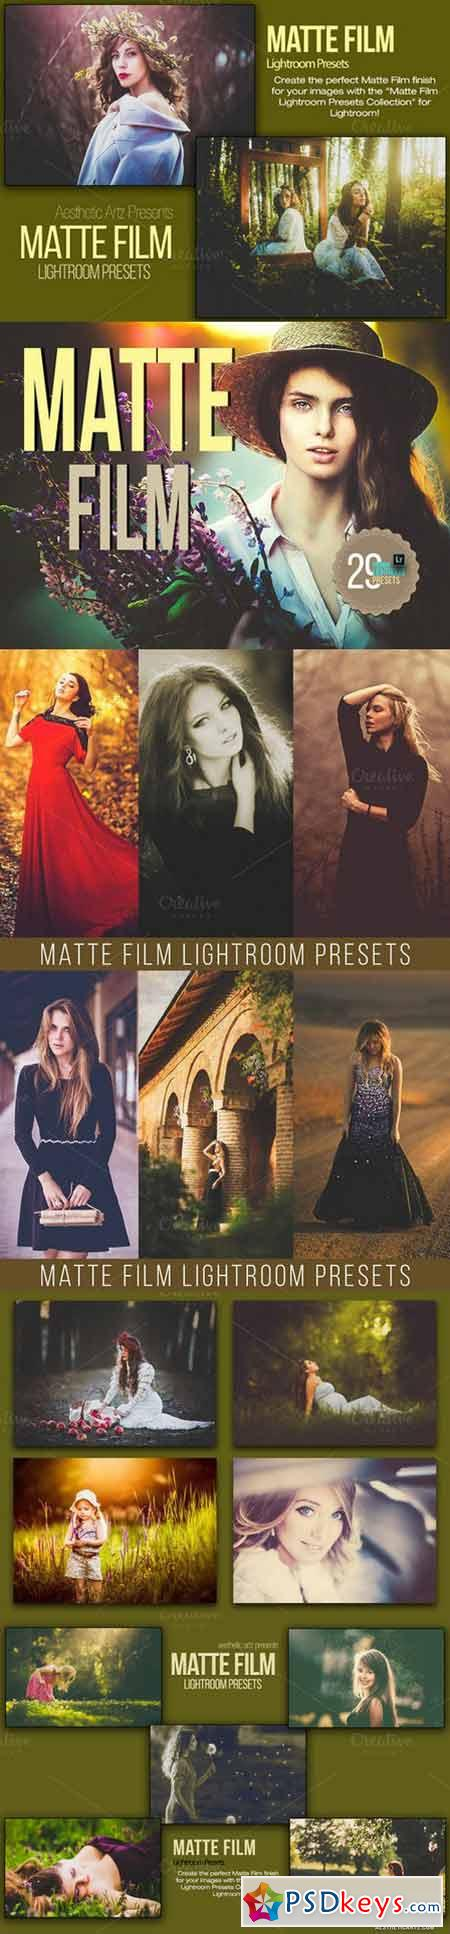 Matte Film Lightroom Presets 39500